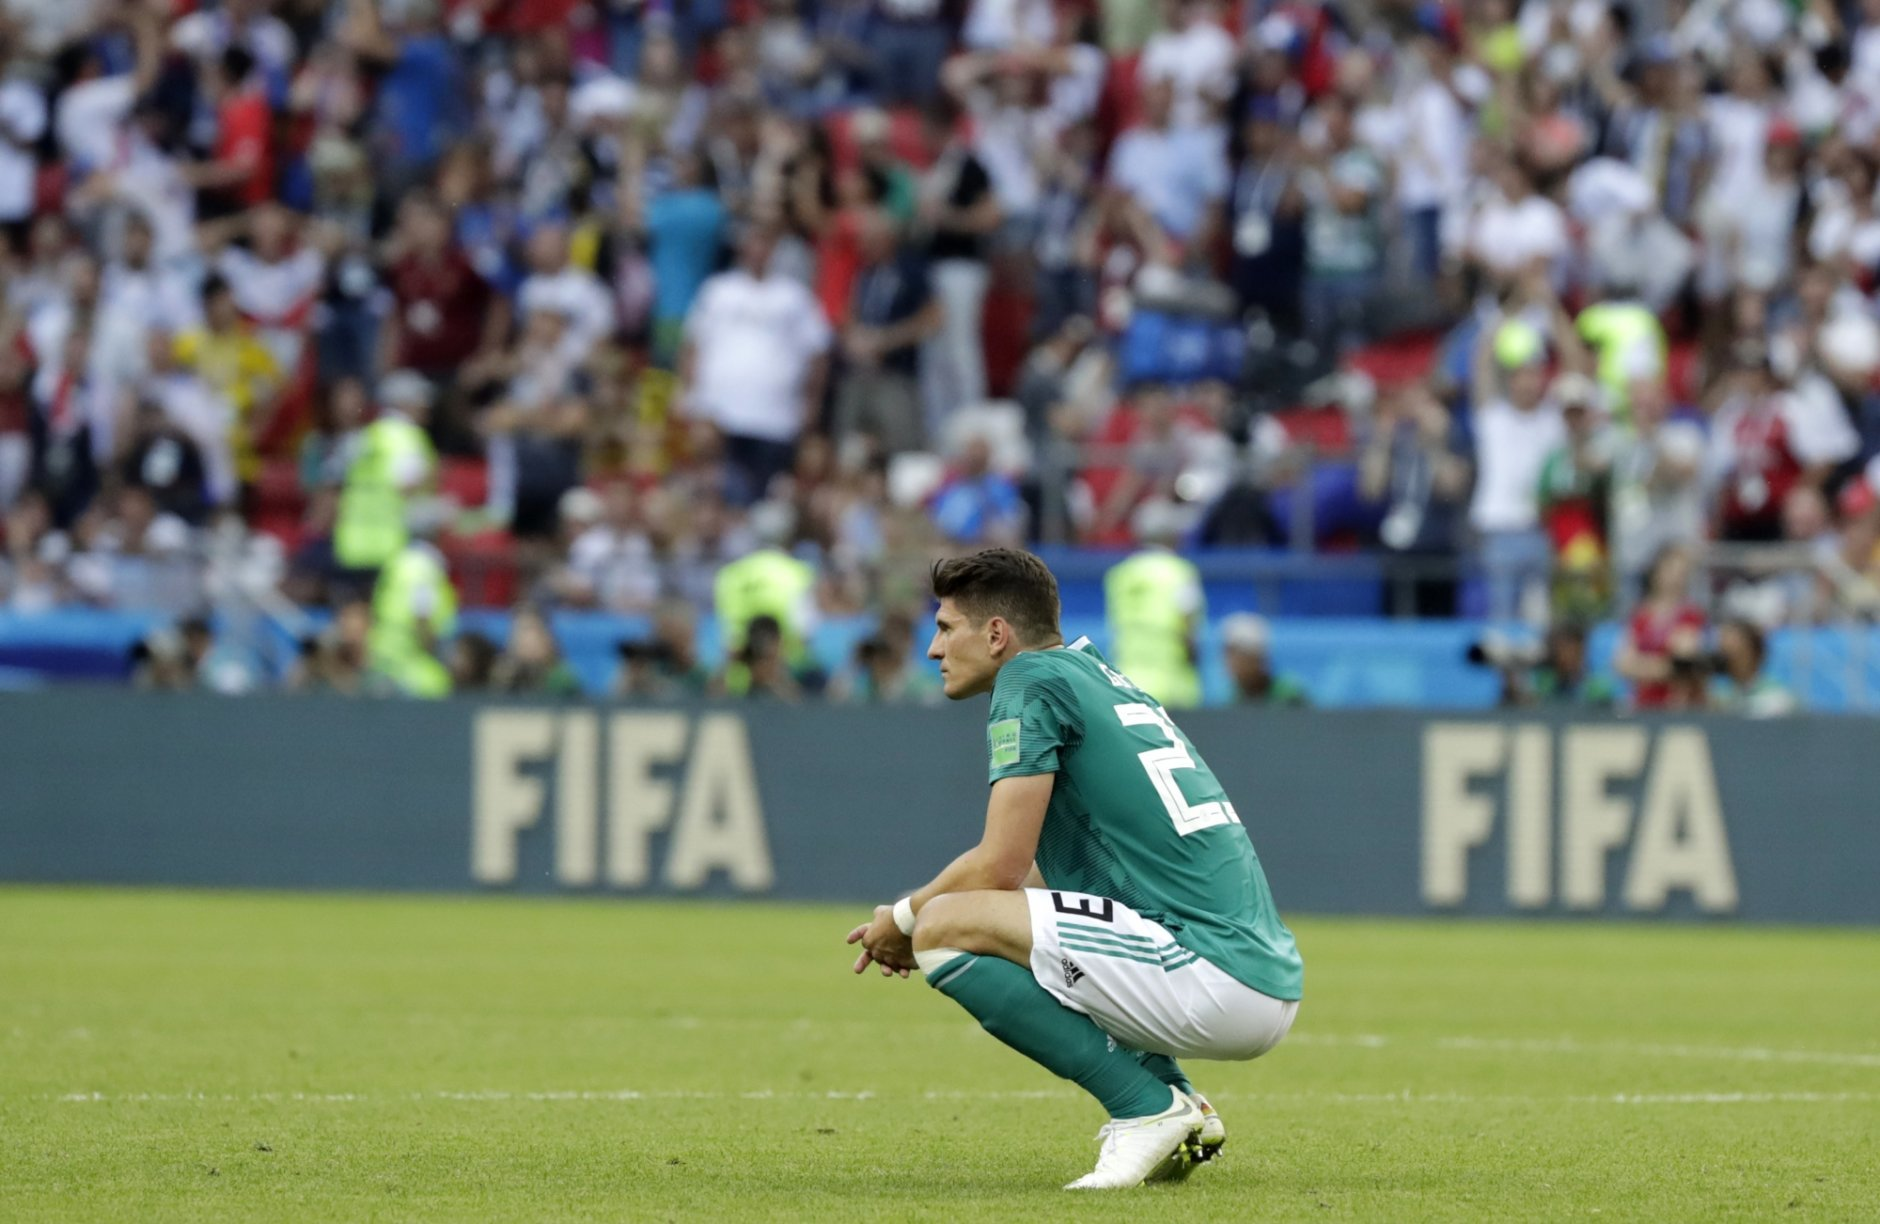 Germany's Mario Gomez on the pitch after the group F match between South Korea and Germany, at the 2018 soccer World Cup in the Kazan Arena in Kazan, Russia, Wednesday, June 27, 2018. (AP Photo/Lee Jin-man)